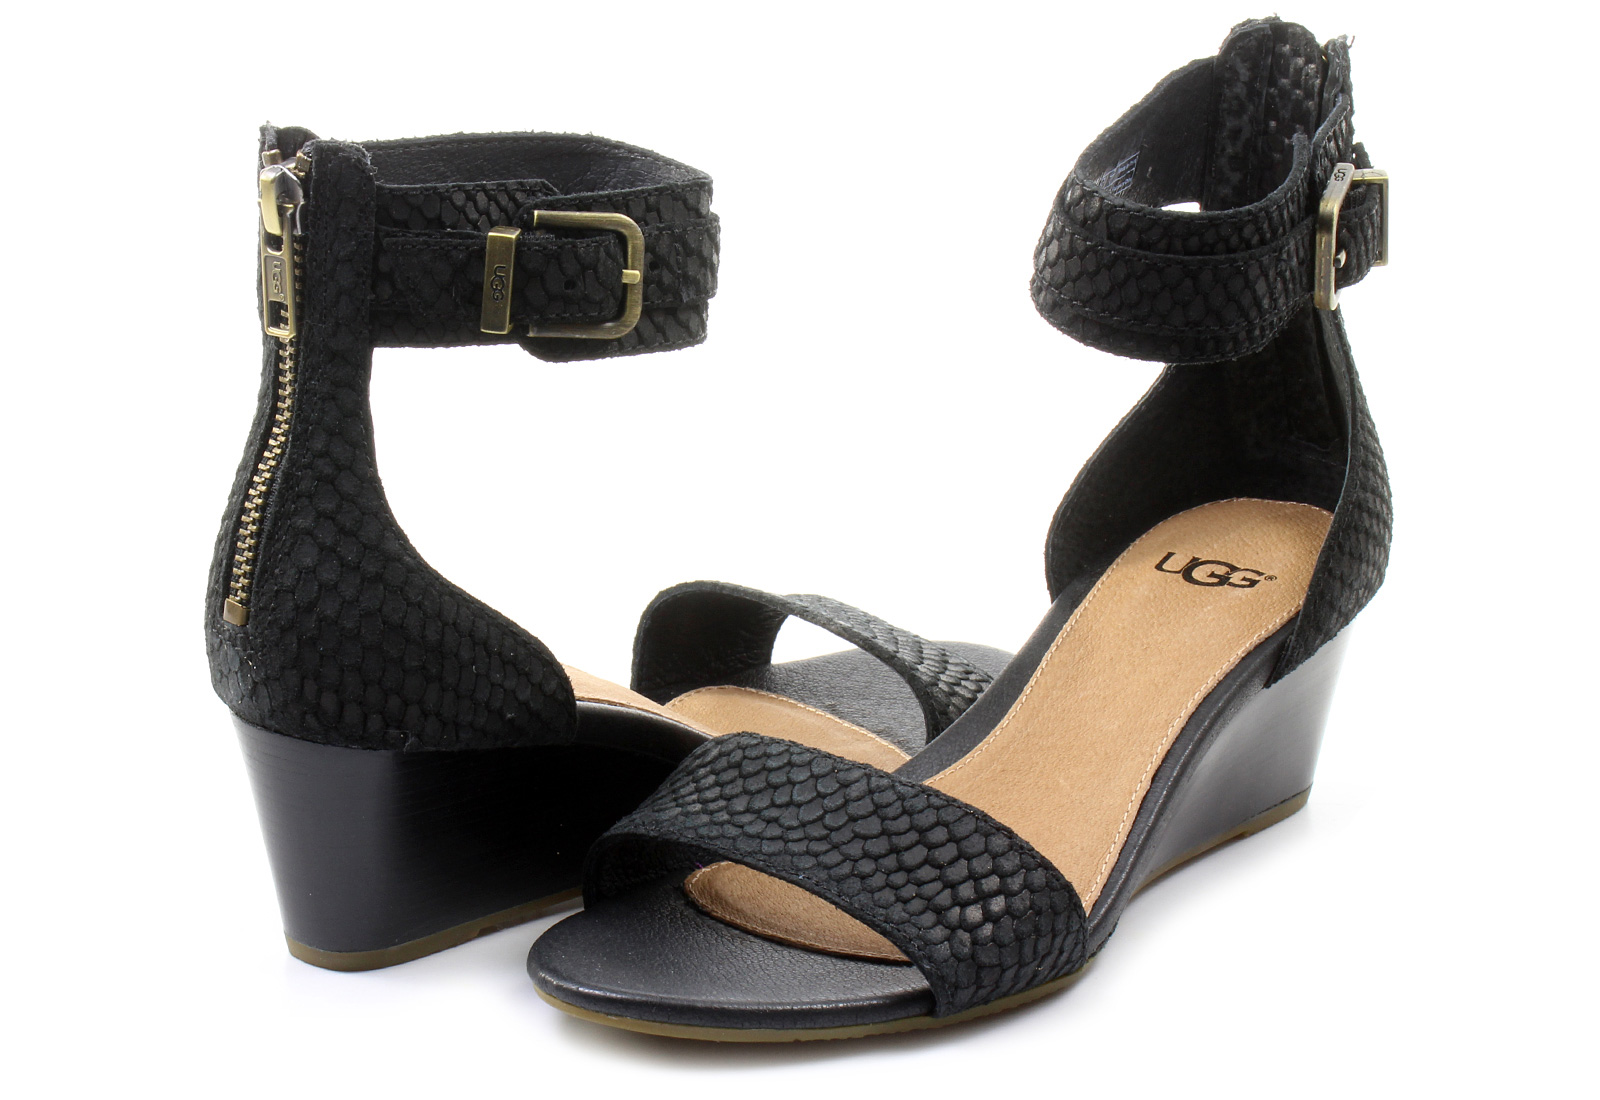 office shoe shop ugg. Ugg Sandals W Char Mar Office Shoe Shop U